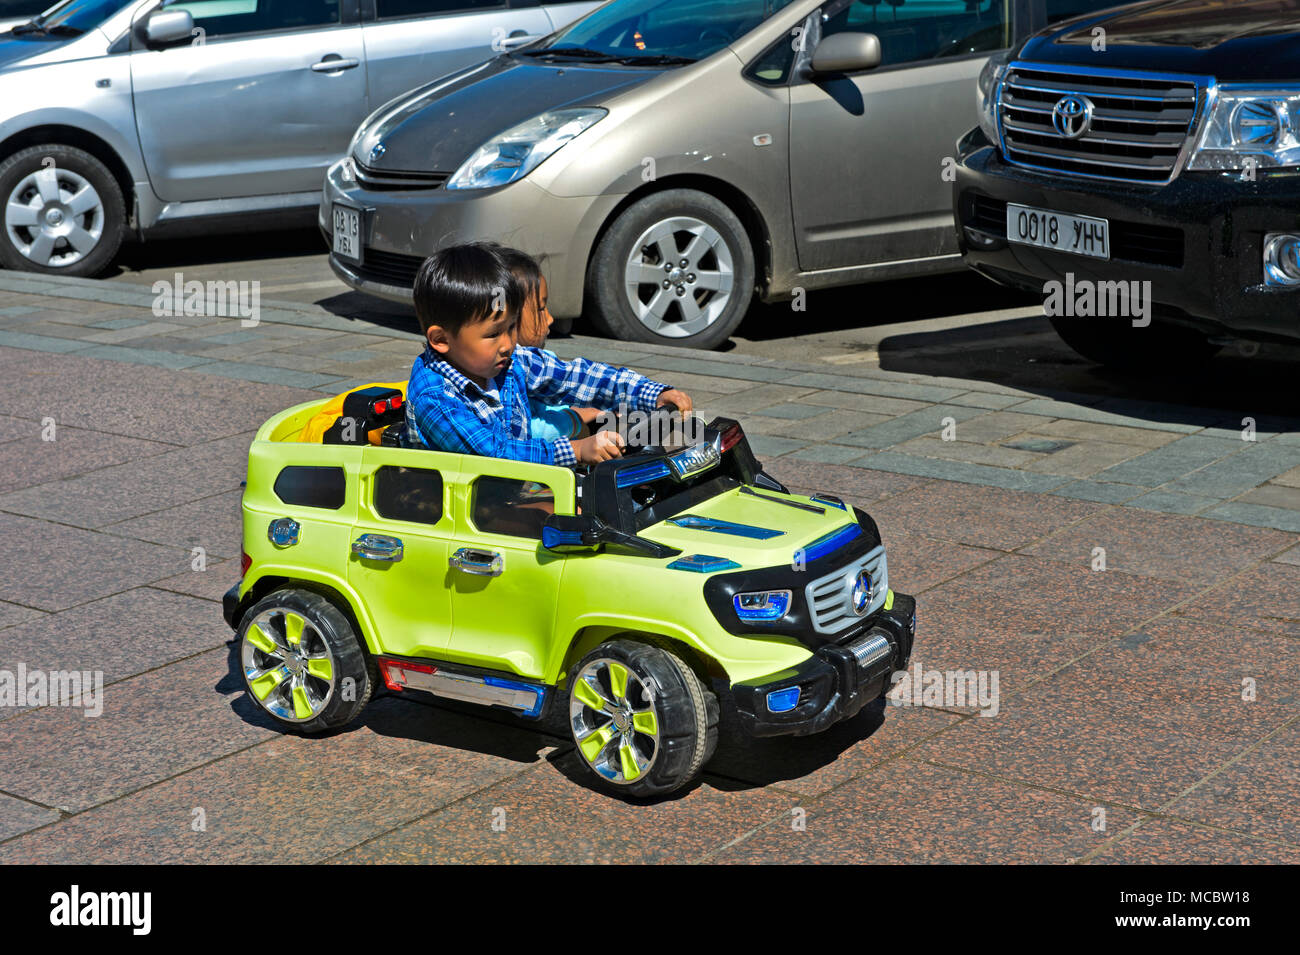 Looking for a parking space, kids riding an electric toy cars, Ulaanbaatar, Mongolia - Stock Image